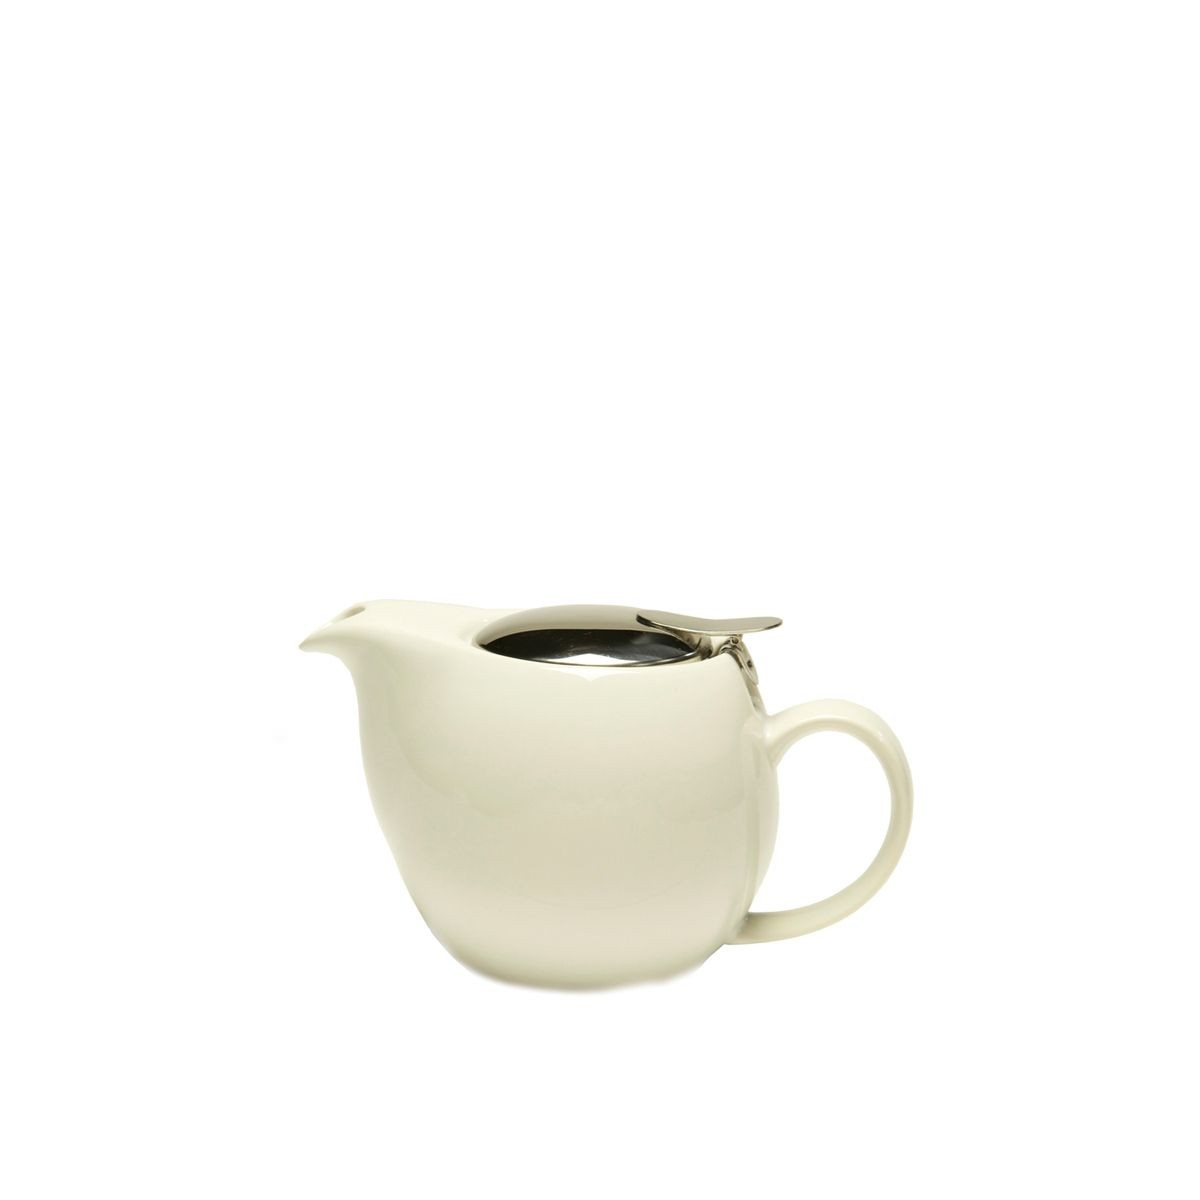 Service Ideas TPCV16WH Oval White Ceramic Teapot with Lid and Infuser 16 oz.